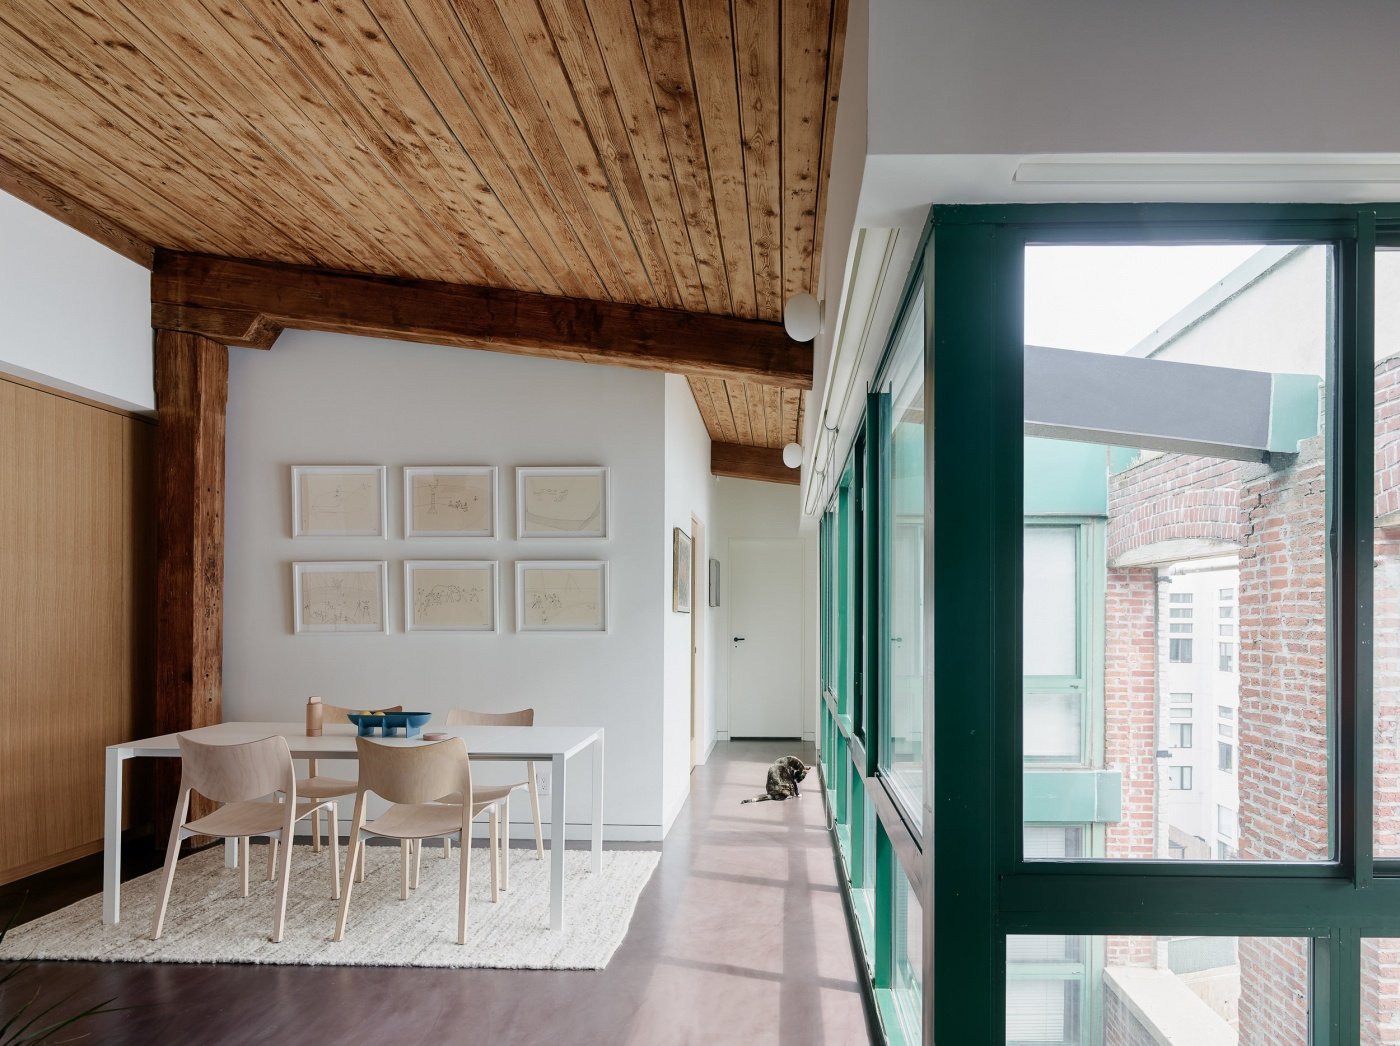 The Charming Loft In Brooklyn By General Assembly